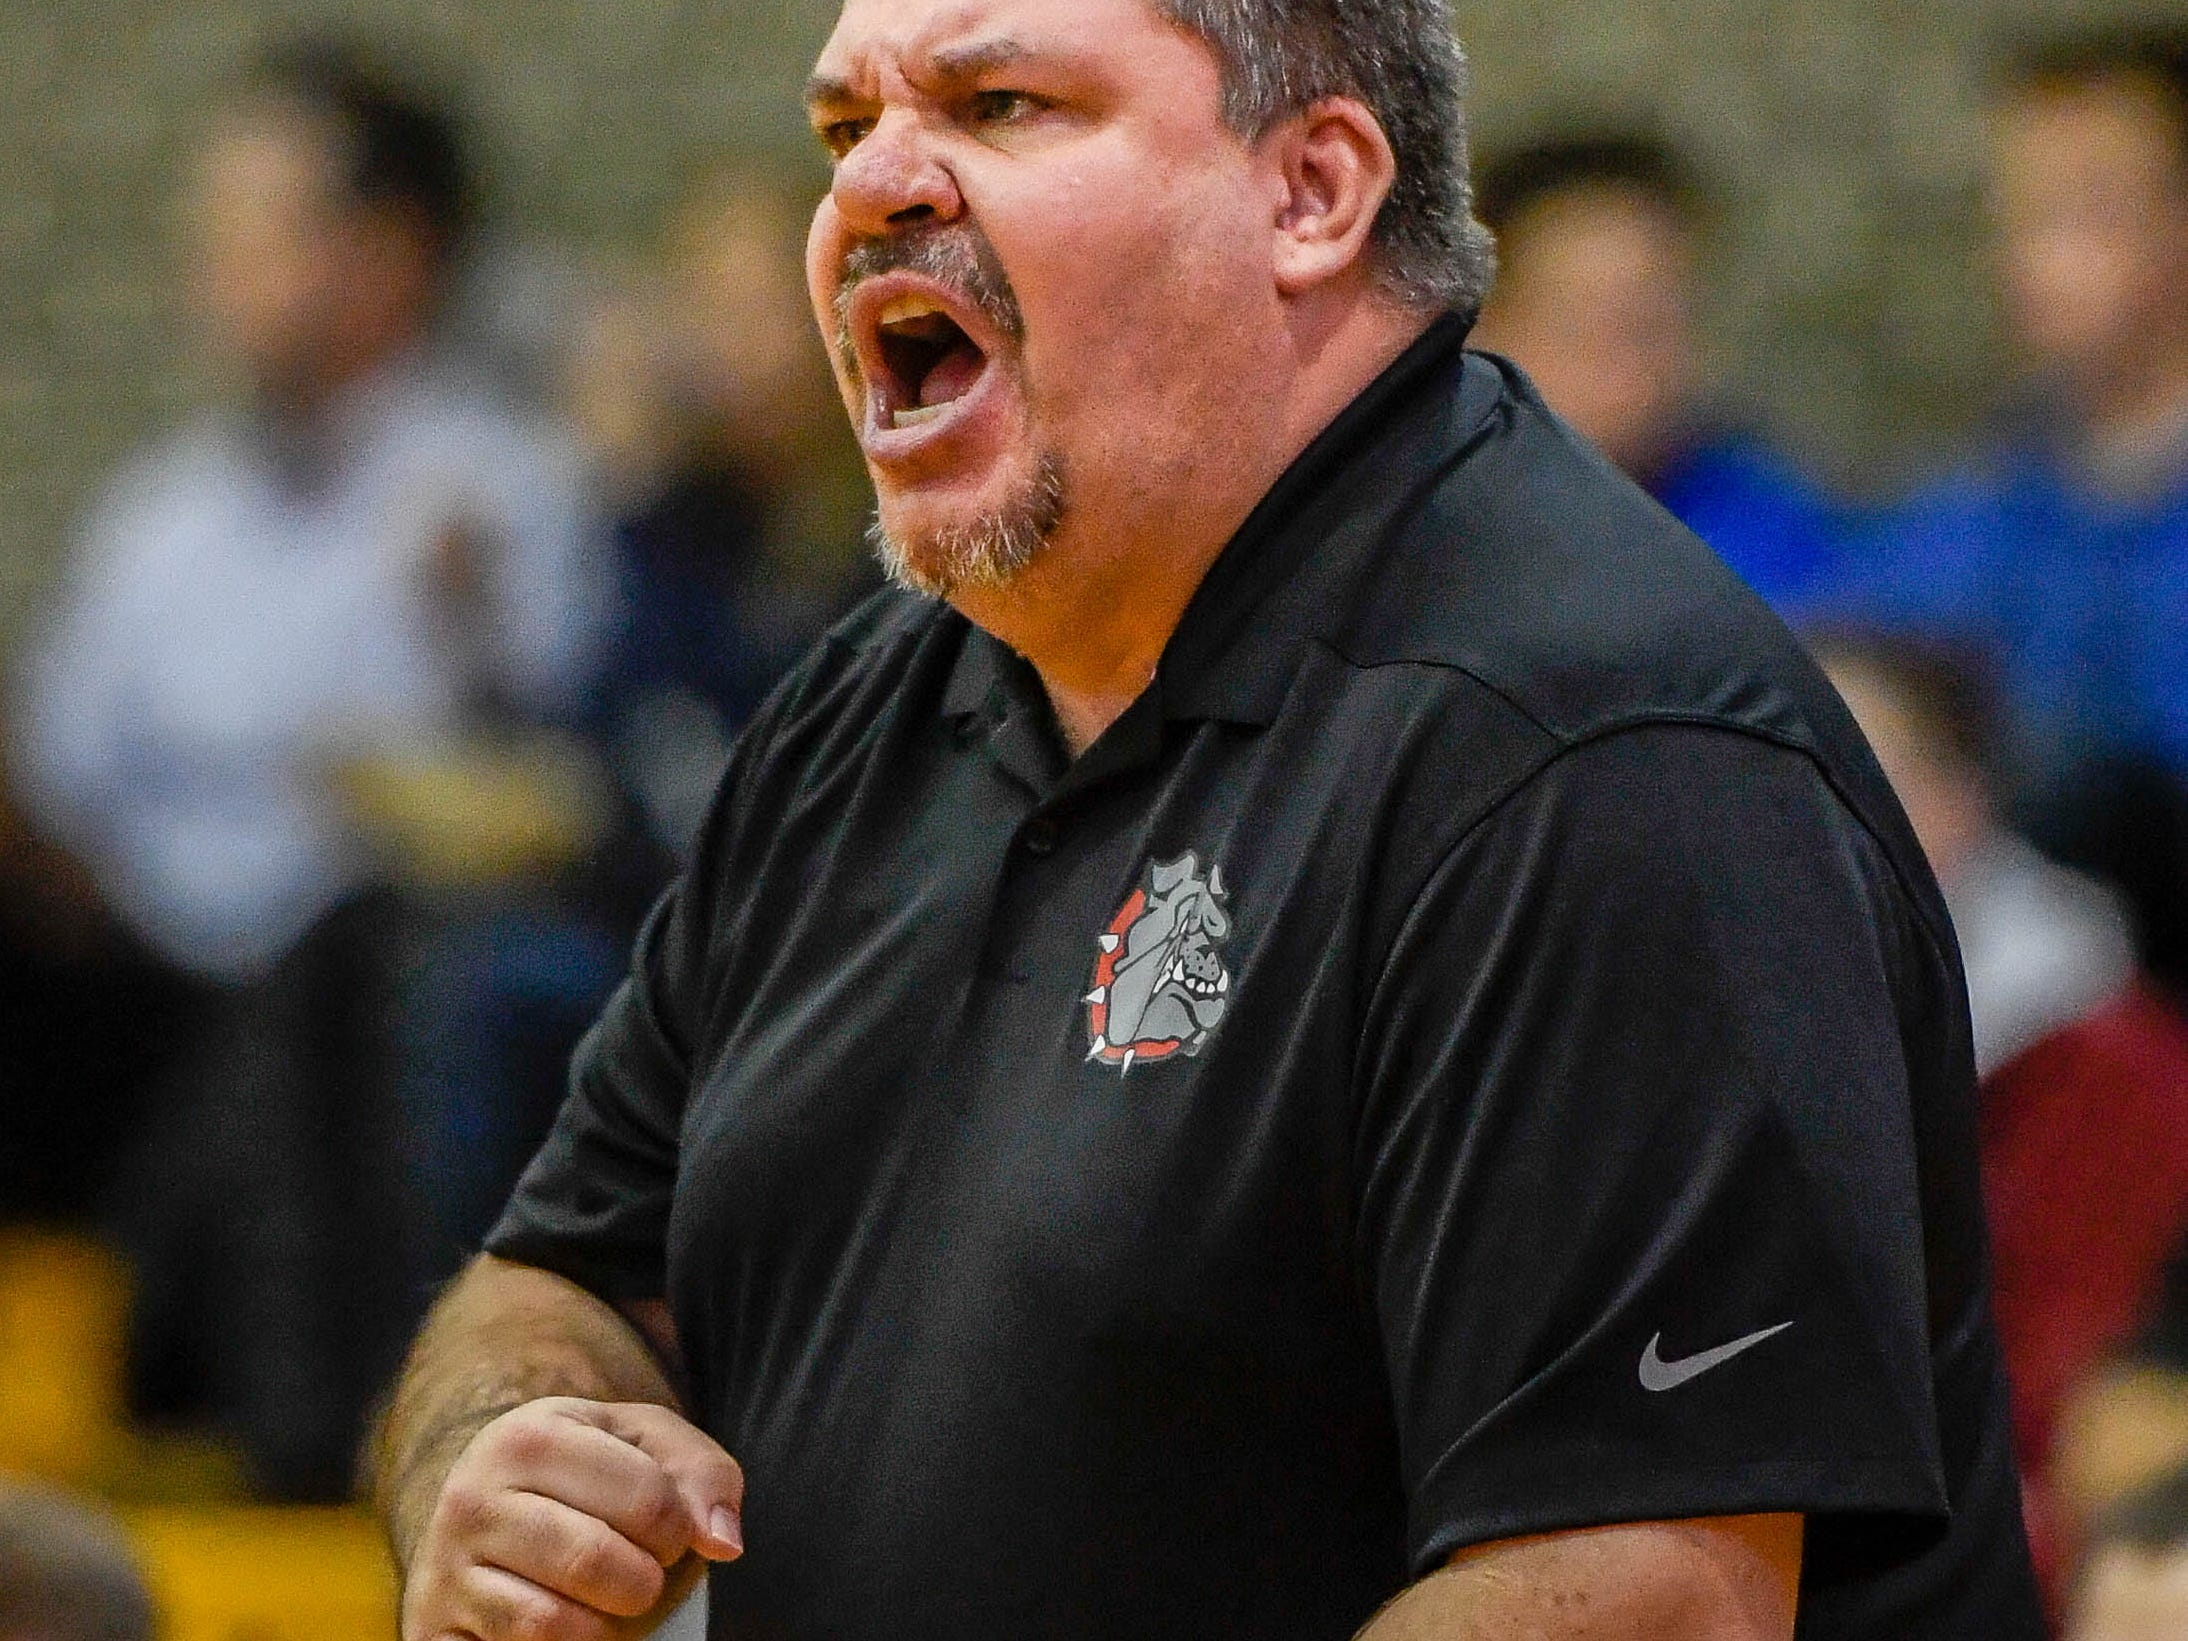 Bosse head coach Shane Burkhart reacts to play on the court as the Castle Knights play the Bosse Bulldogs in the Southern Indiana Athletic Conference semi-finals at Central High Thursday, January 10, 2019.